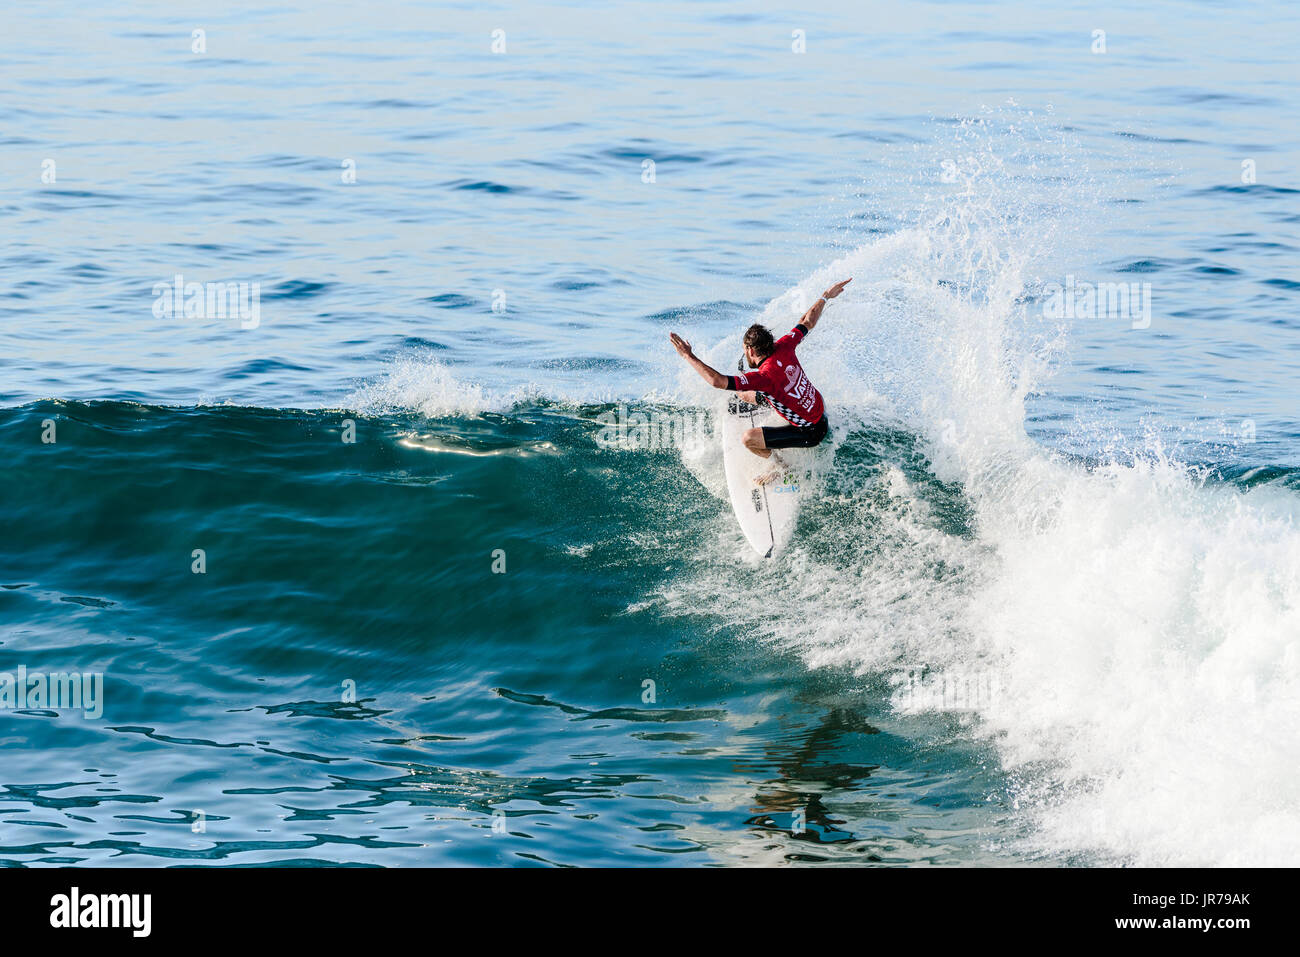 Huntington Beach, USA. 03 August, 2017. Frederico Morals (PRT) competes at the 2017 VANS US Open of Surfing. Credit: Benjamin Ginsberg/Alamy Live News. - Stock Image